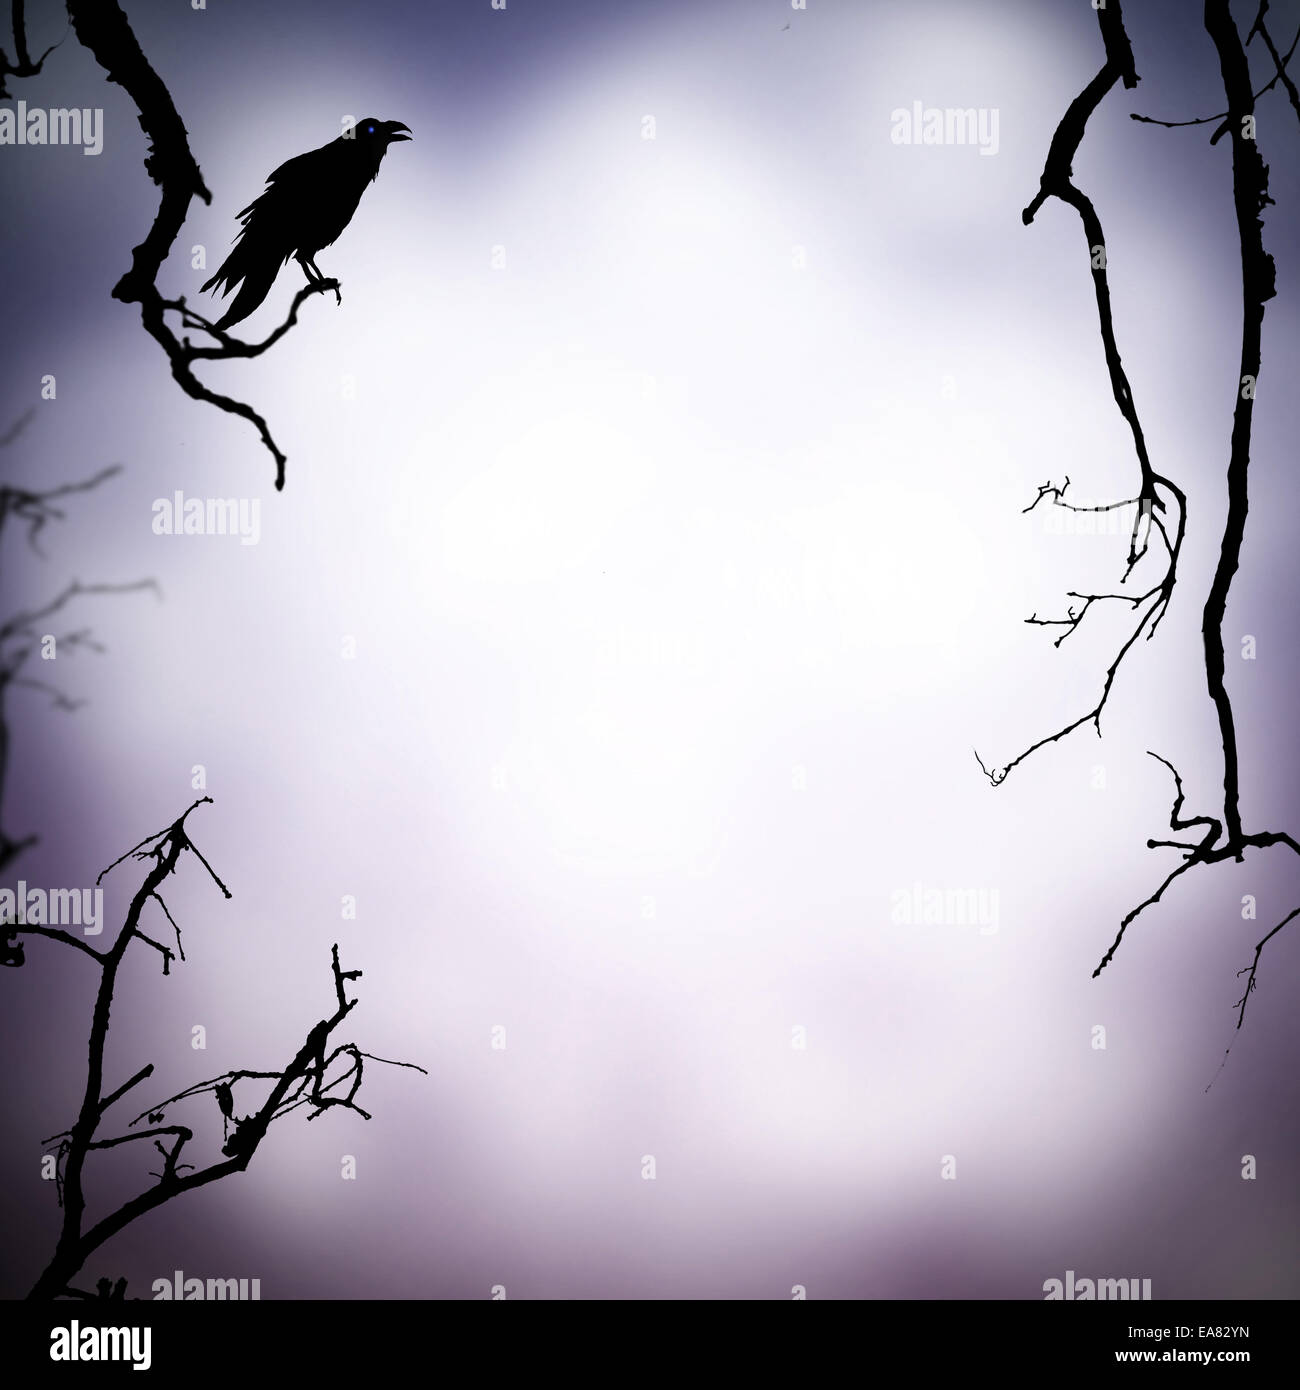 halloween background with raven silhouette and free space for text - Halloween Background Images Free